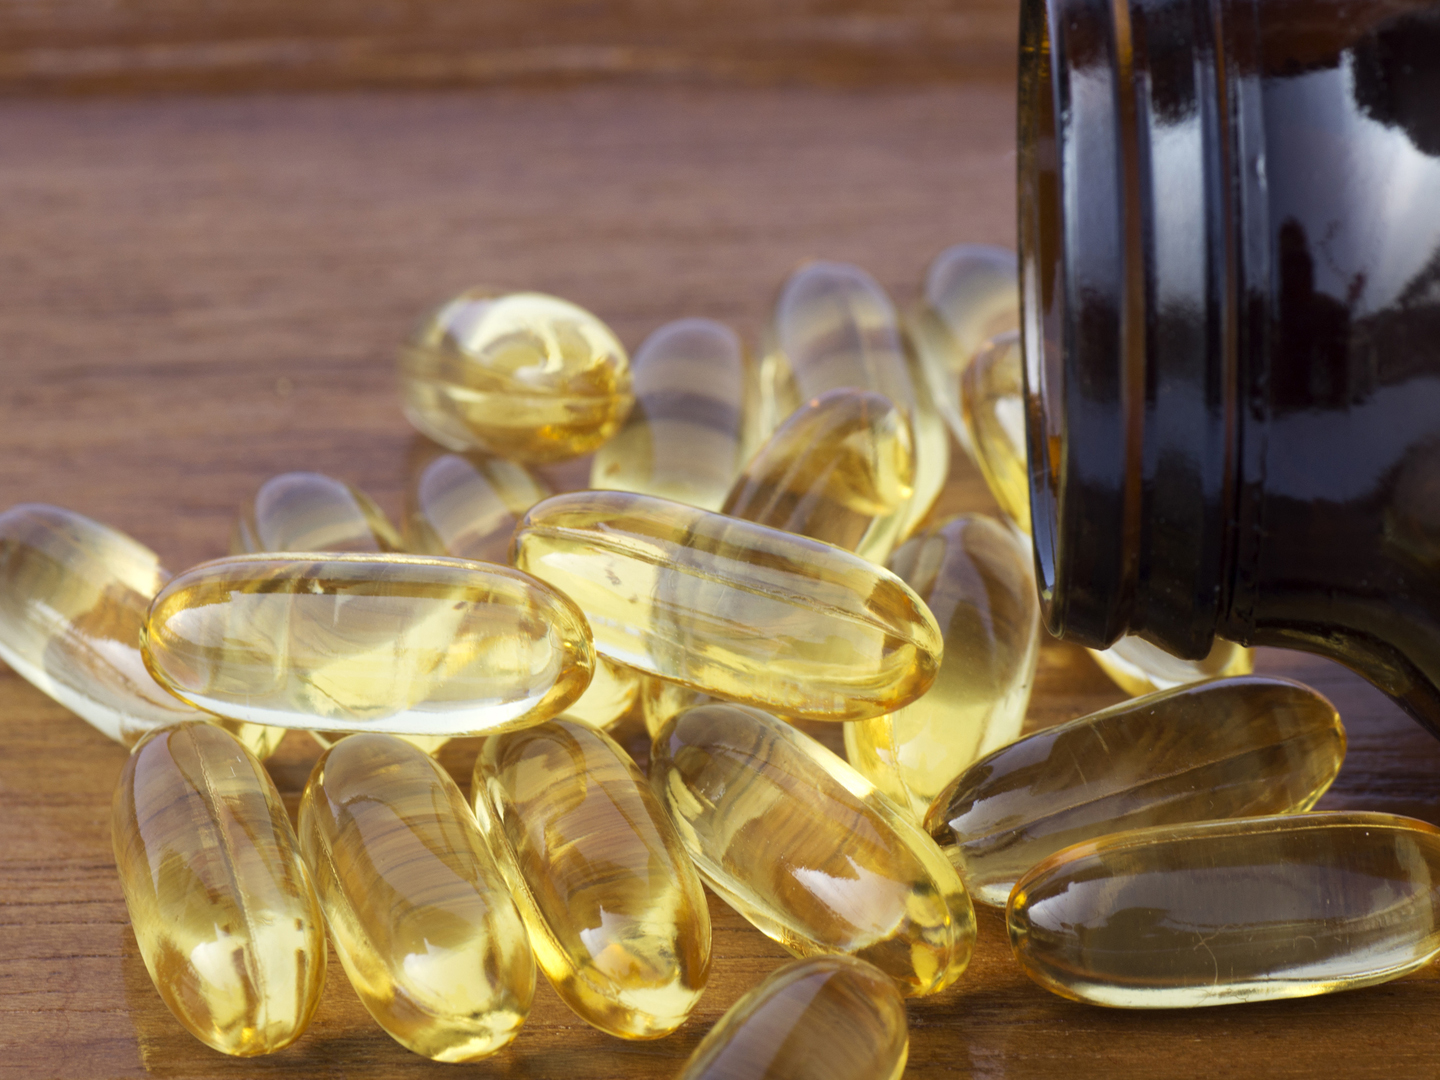 how to take evening primrose oil for breast tenderness